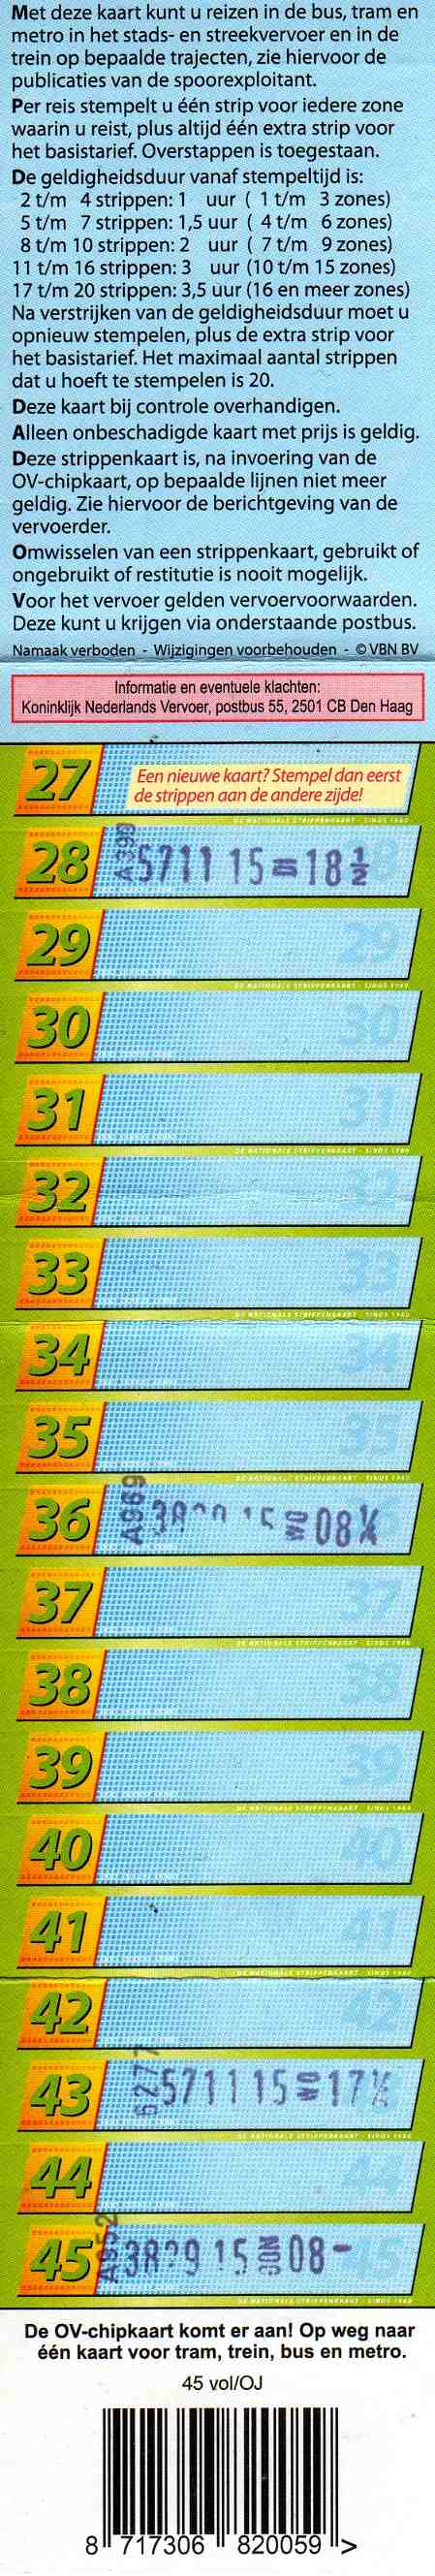 45-strip ticket (back)